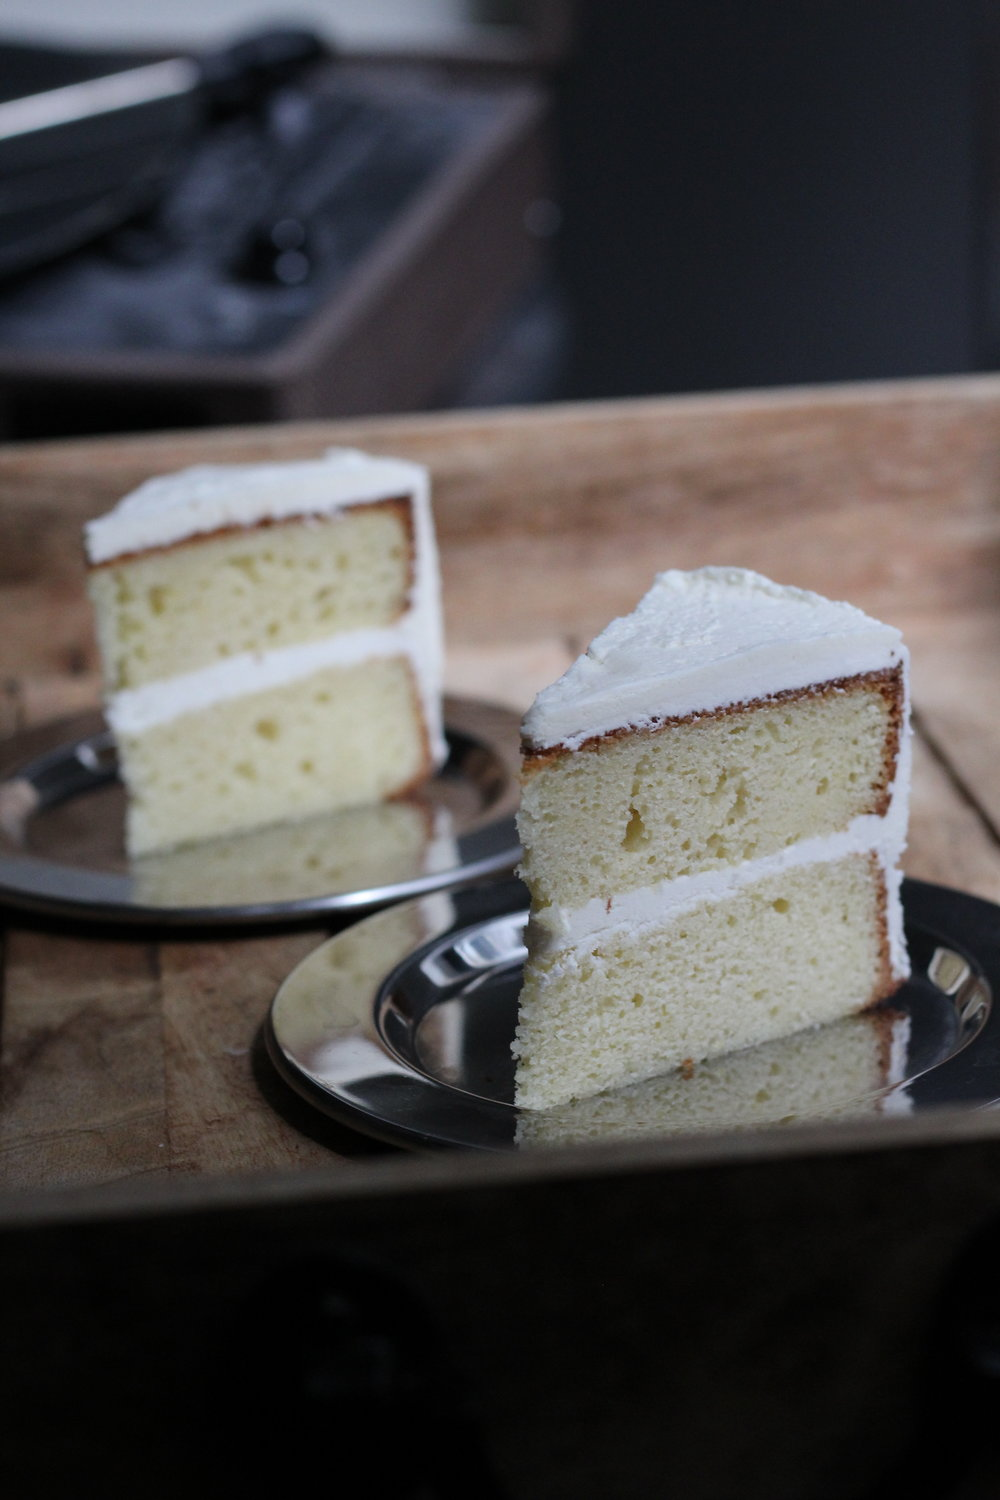 sunflower-cake-with-coconut-ermine-buttercream.jpg